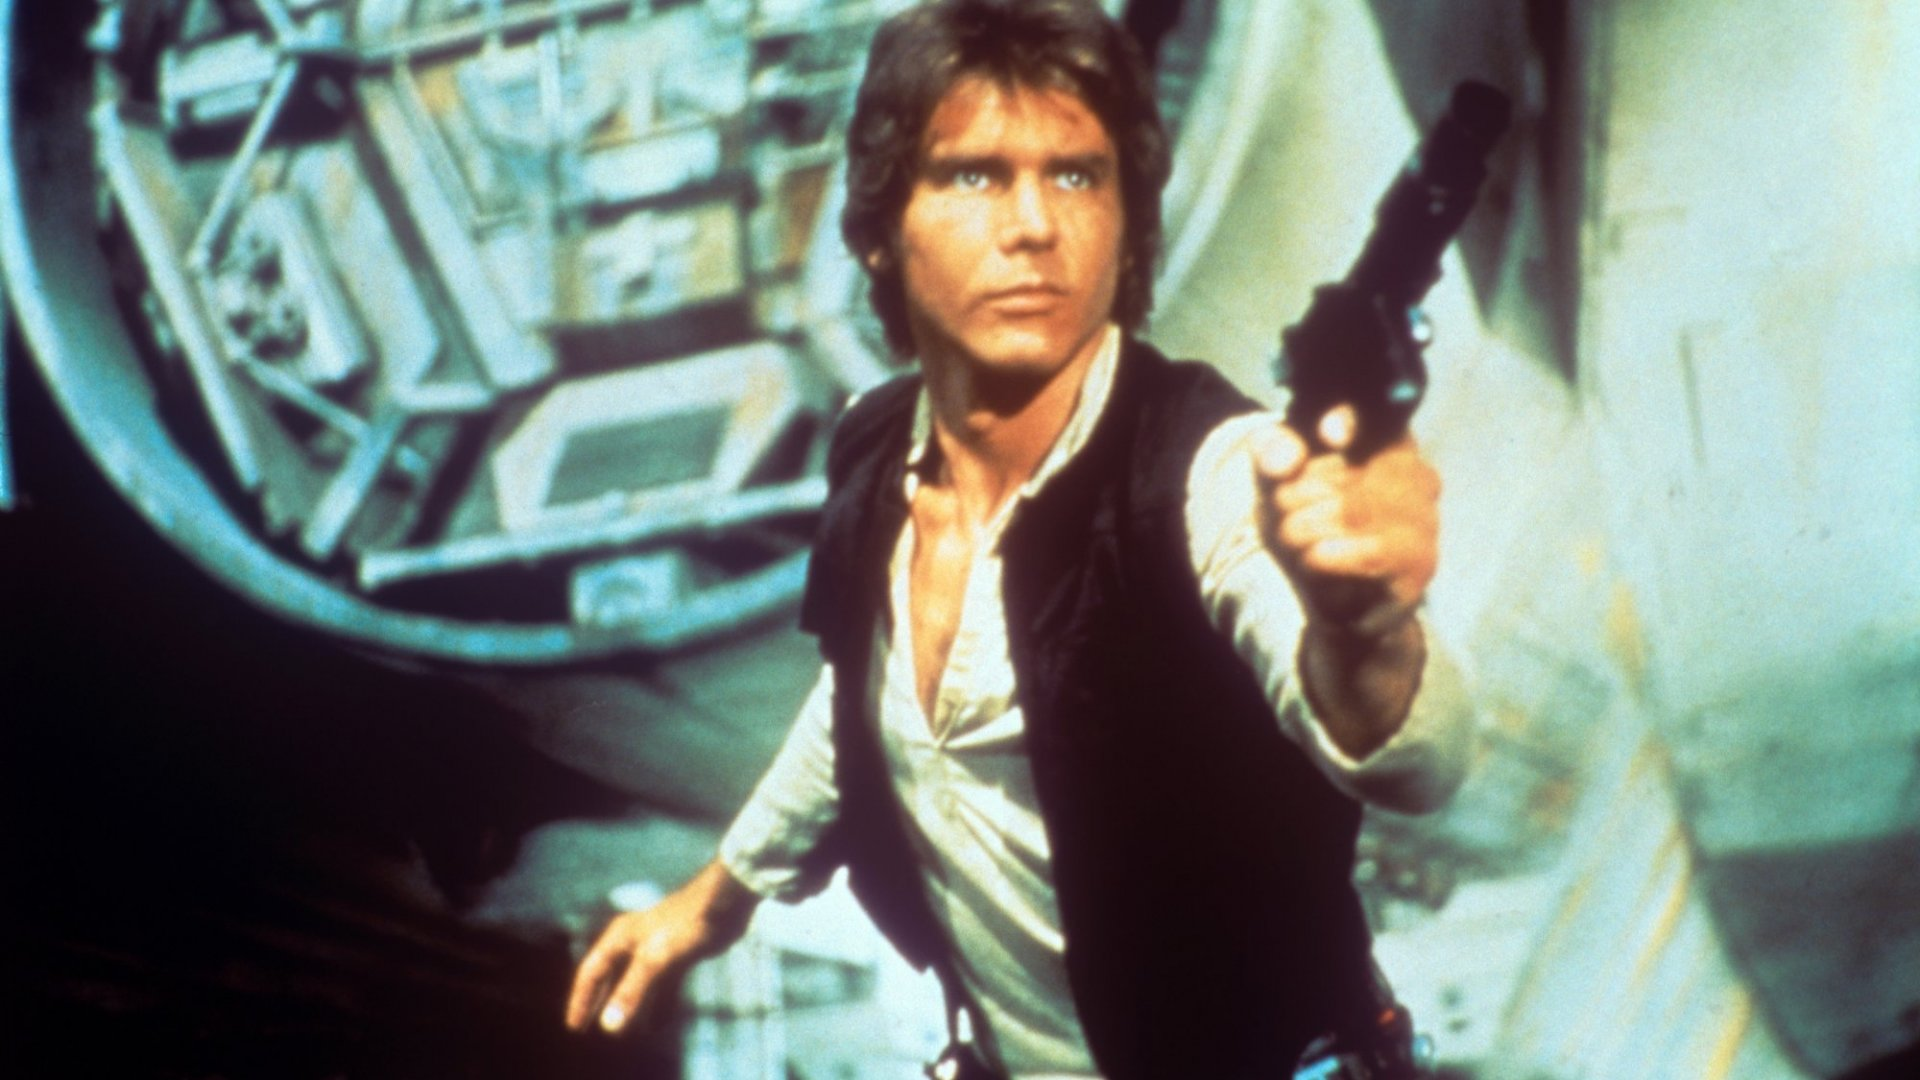 Han Solo was one heck of an entrepreneur in the world of space smugglers.